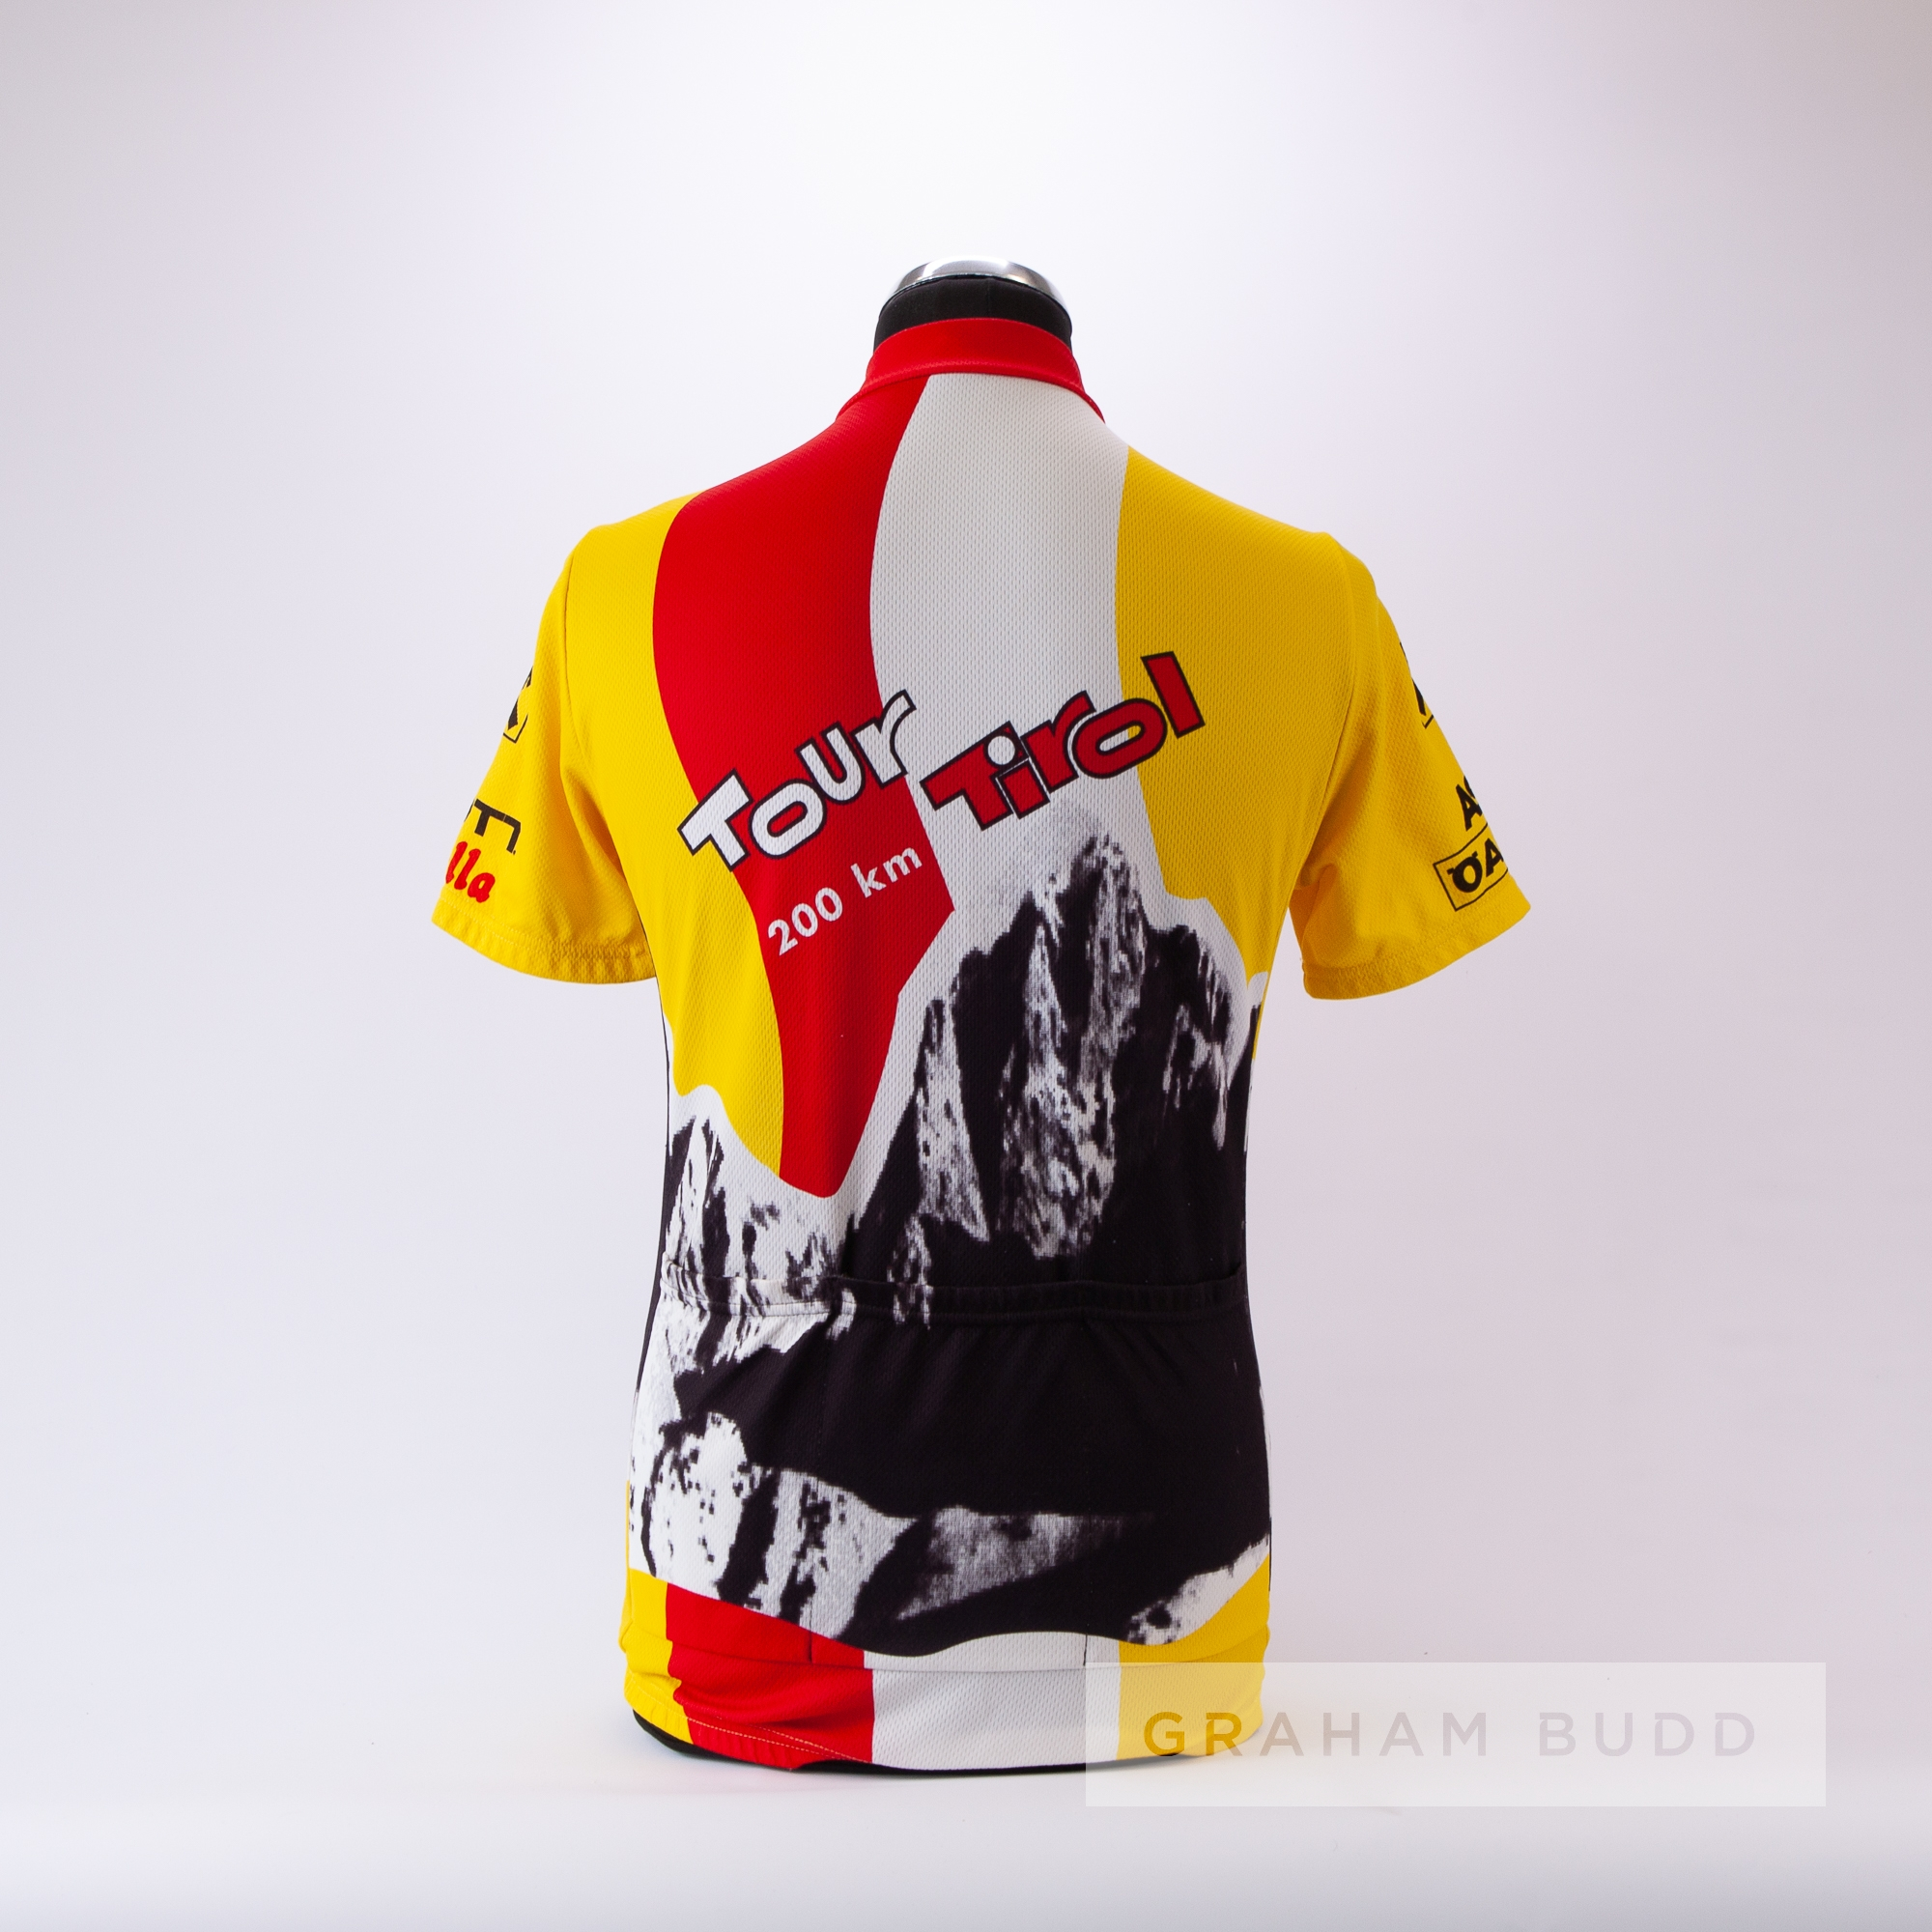 1998 yellow, black, red and white Tour Tirol 200 km Cycling race jersey, scarce, polyester short- - Image 4 of 4